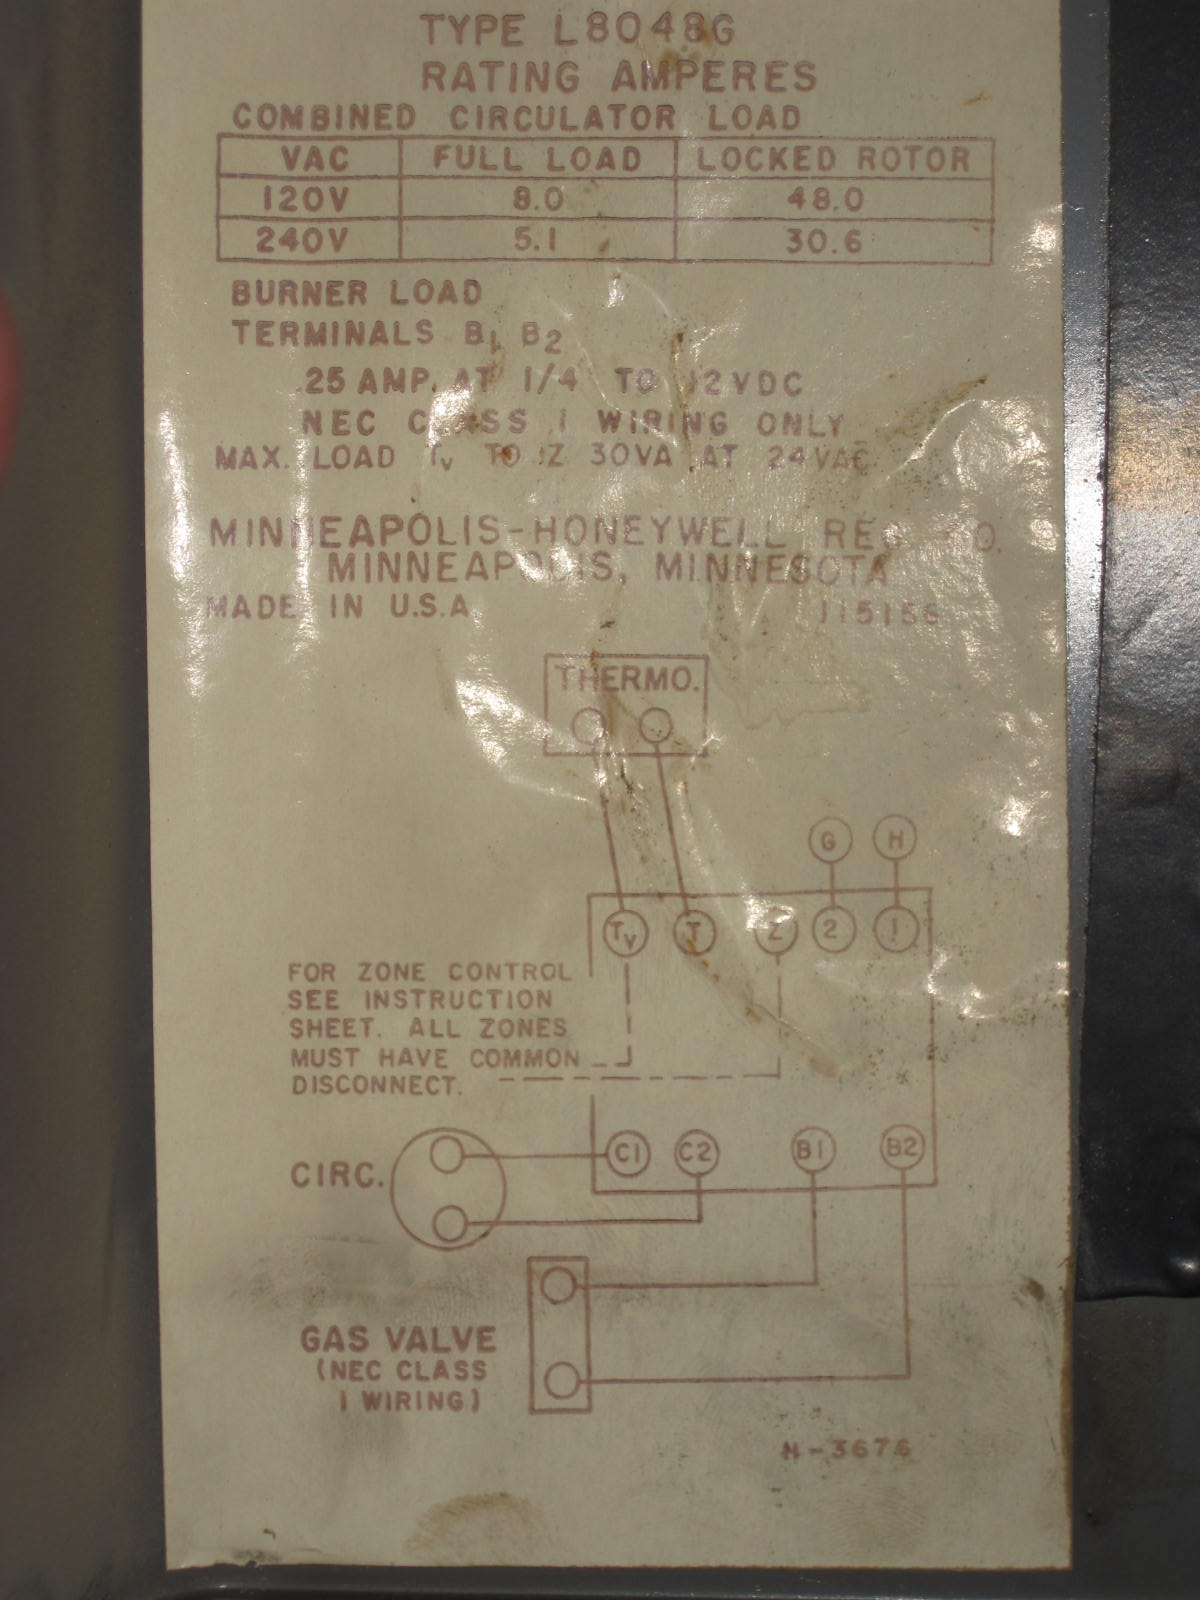 Honeywell Aquastar L8048g 2 Taco Zone Valves Adding A 24v Wiring Diagram Img 3333